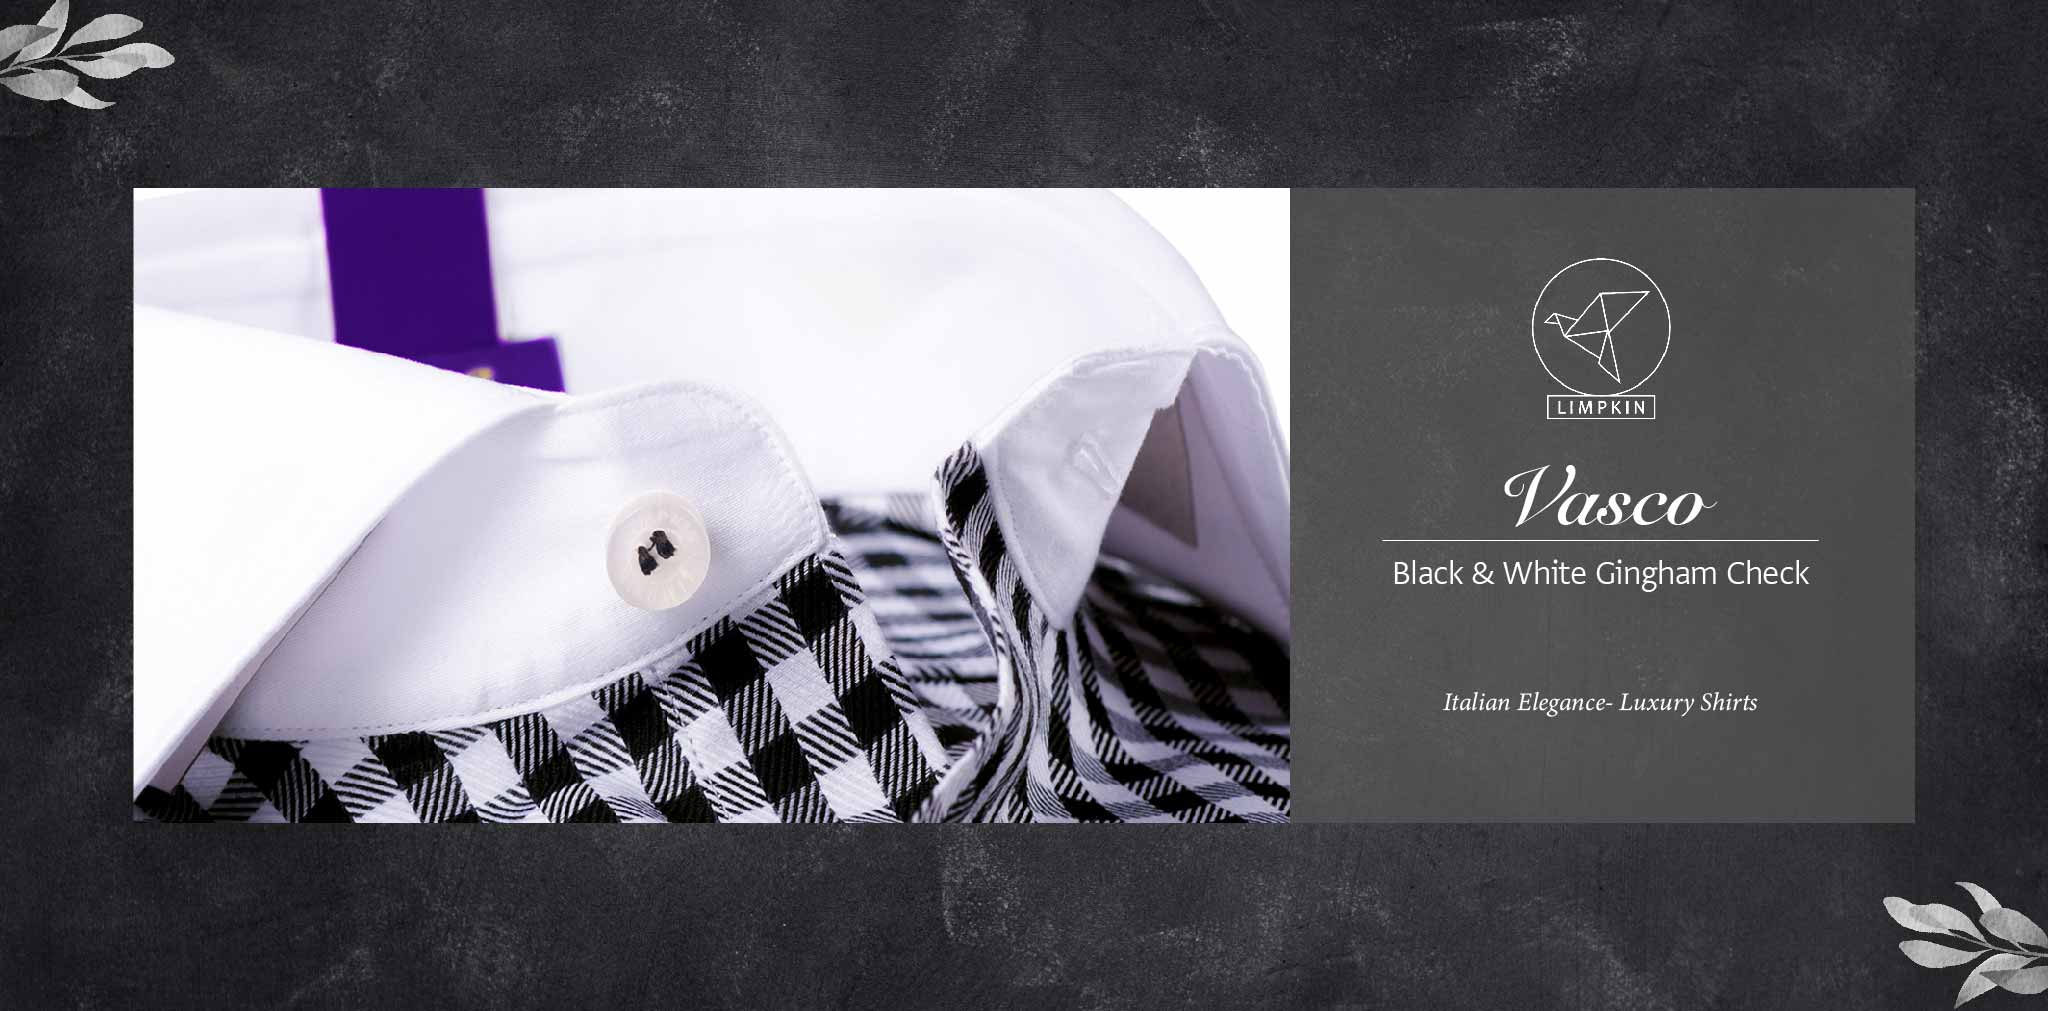 Vasco- Black & White Gingham Check- 2/140 Egyptian Giza Cotton- Delivery from 26th Jan - Banner